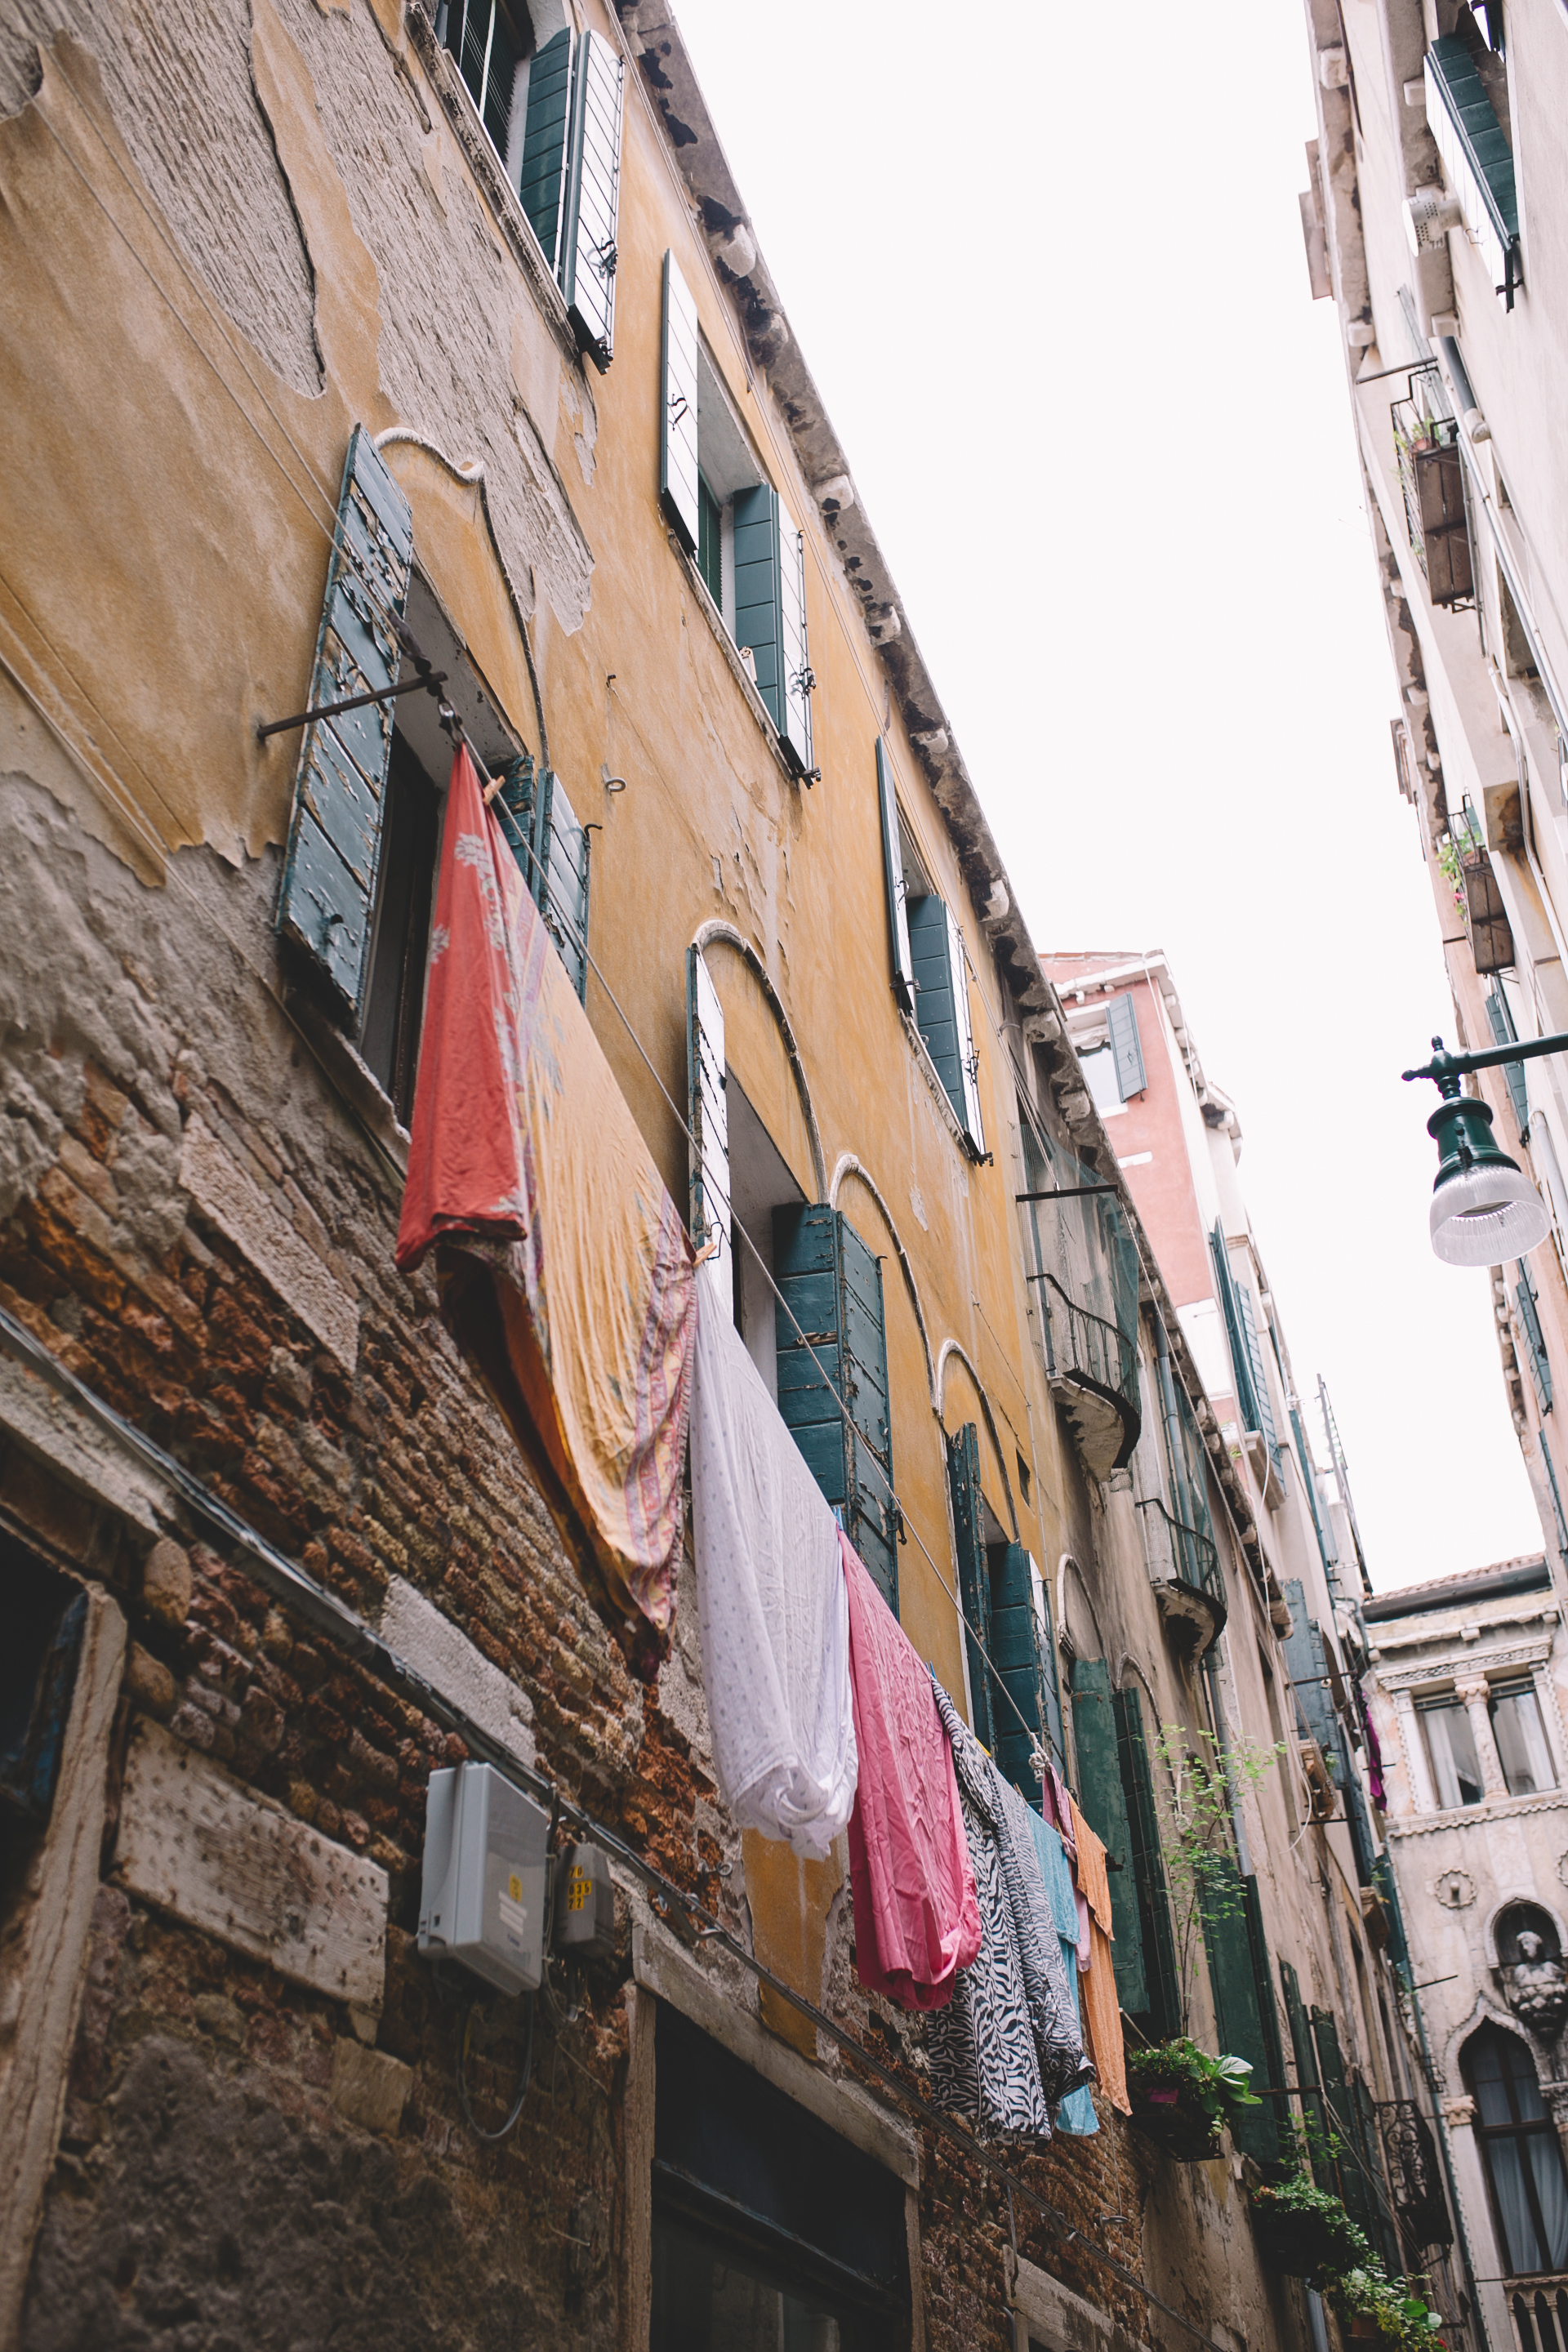 Blog Venice Italy Streets with Laundry  (4 of 5).jpg